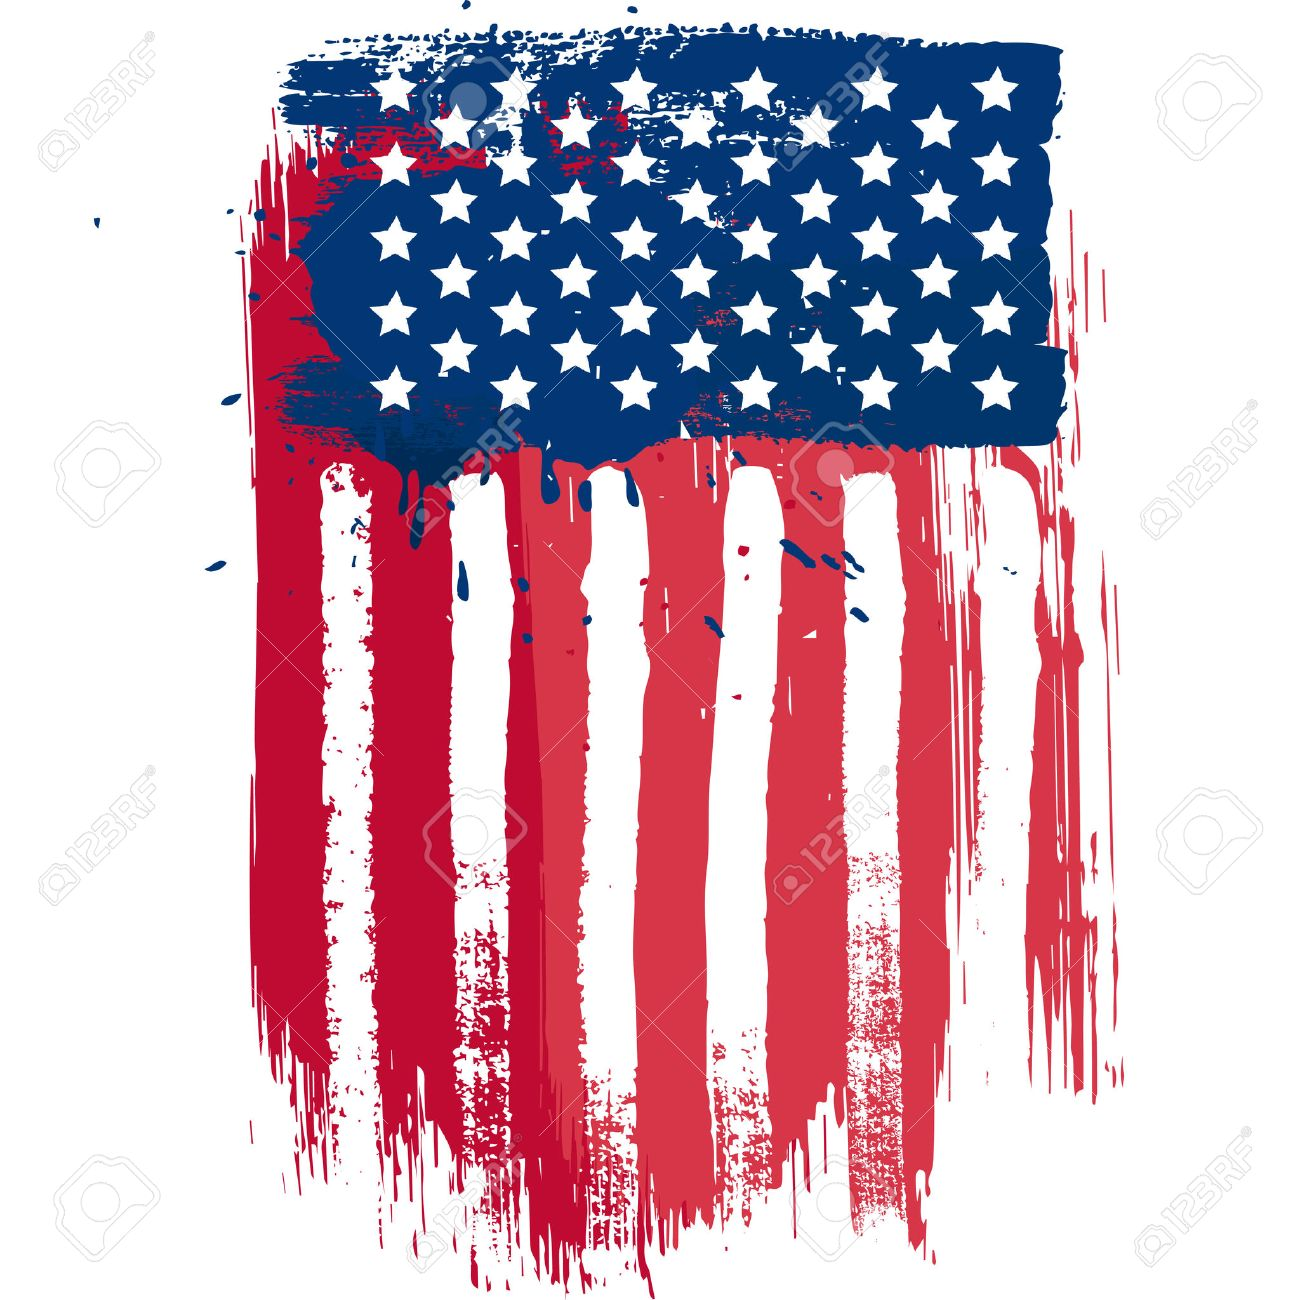 Vertical Composition Vector American Flag In Grunge Style Royalty